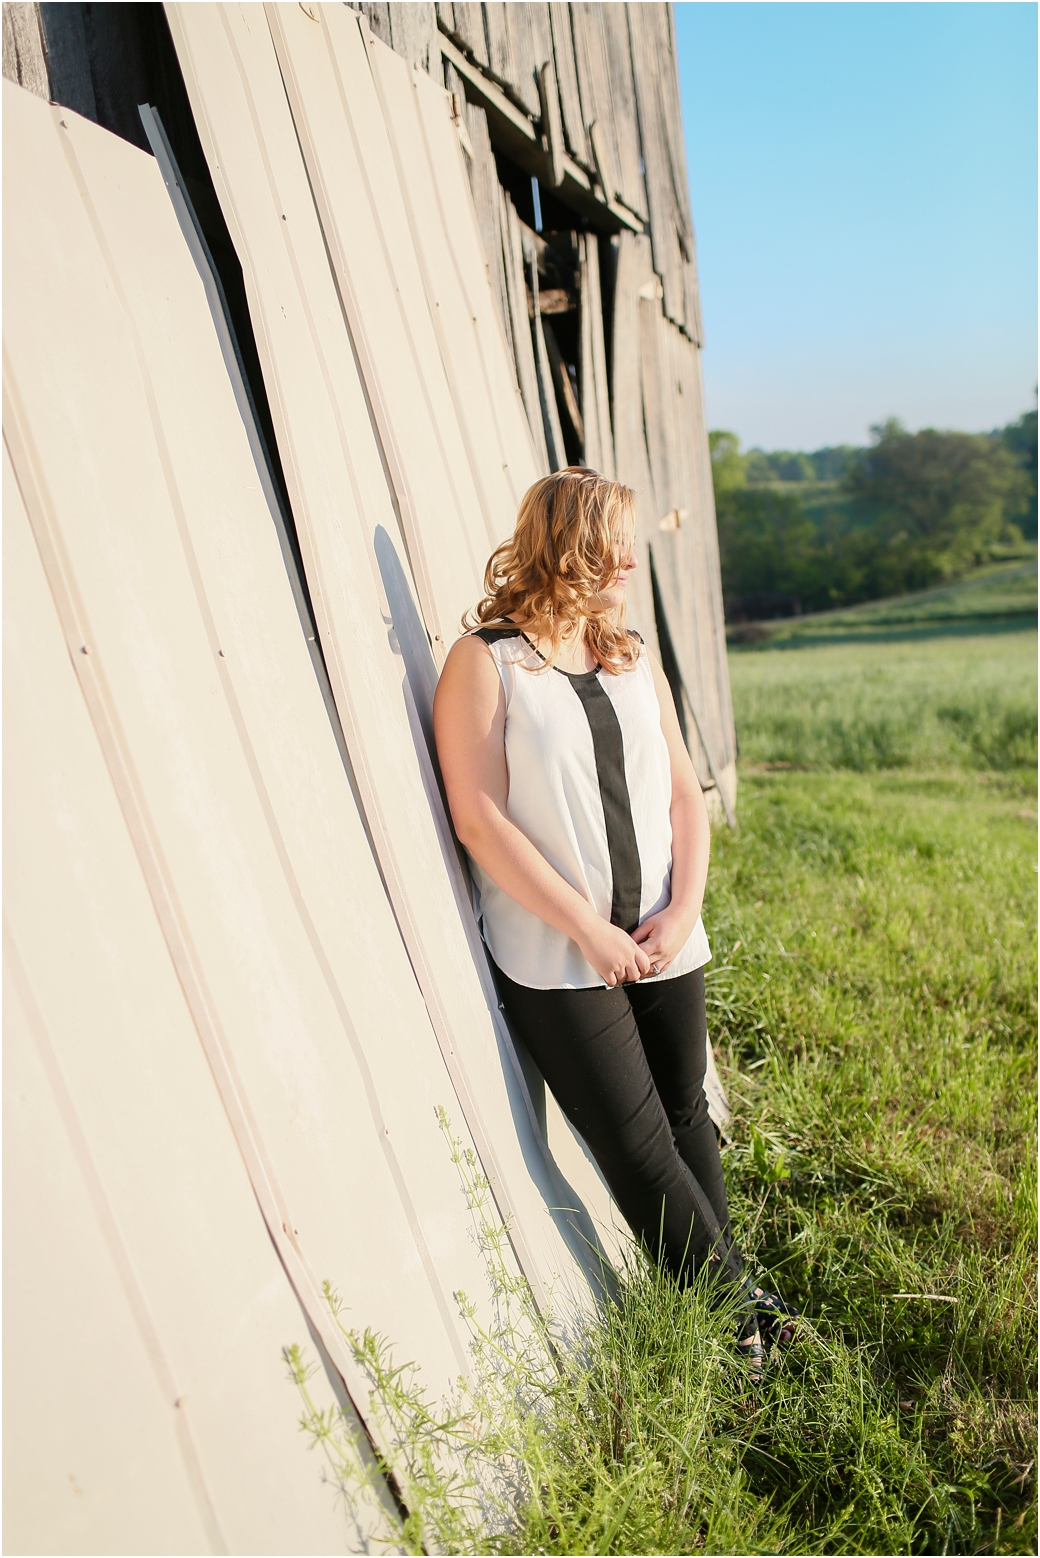 knoxvilleseniorphotographerb08.jpg